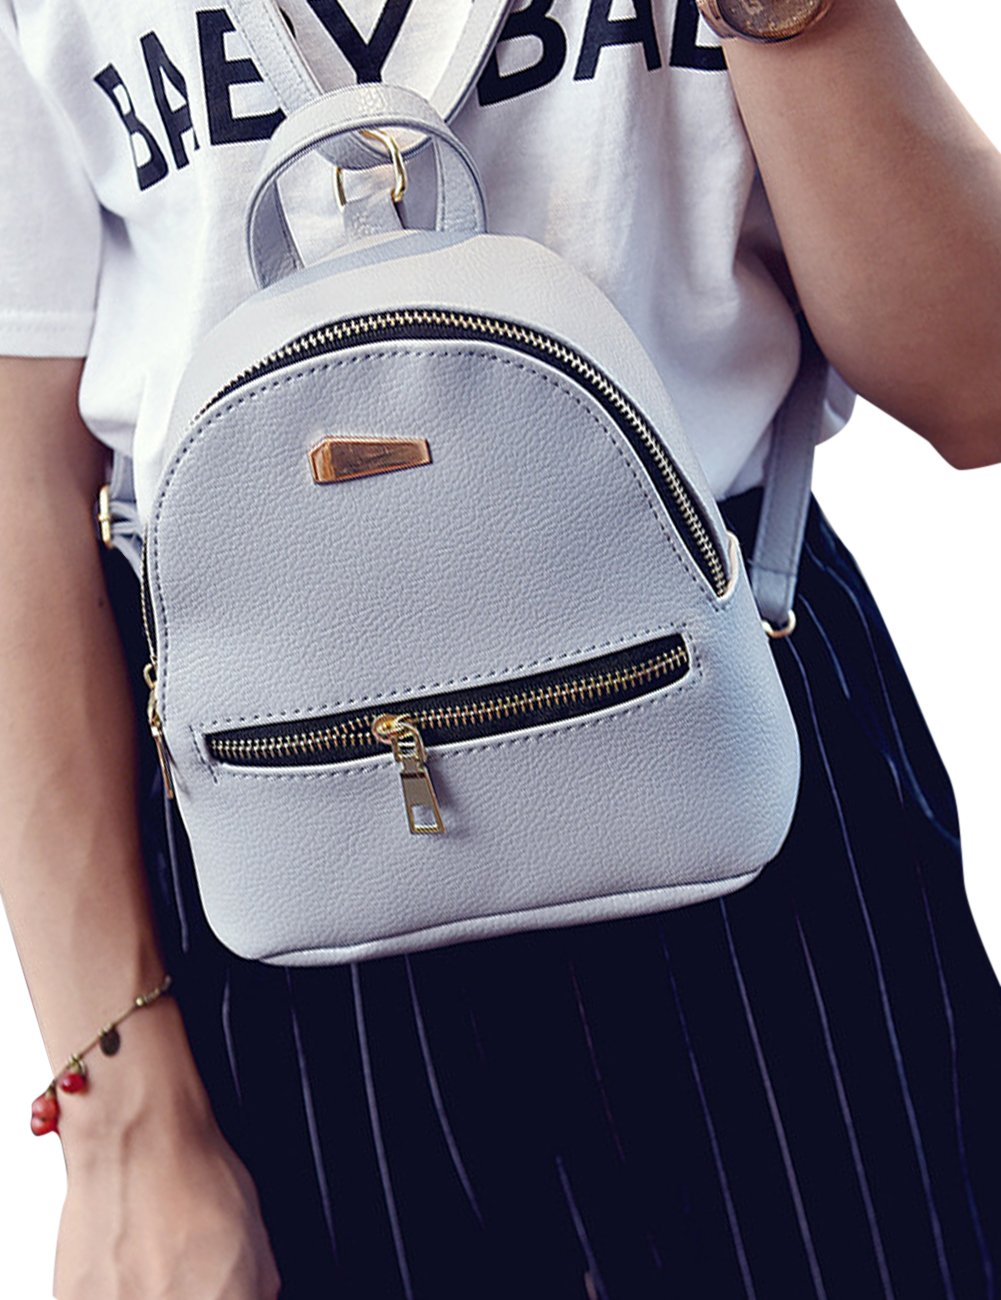 ShiningLove Cute Concise PU Leather Travel Backpack For Teenagers Girls Candy Color Shoulder Bag Casual Daypack Black by ShiningLove (Image #5)